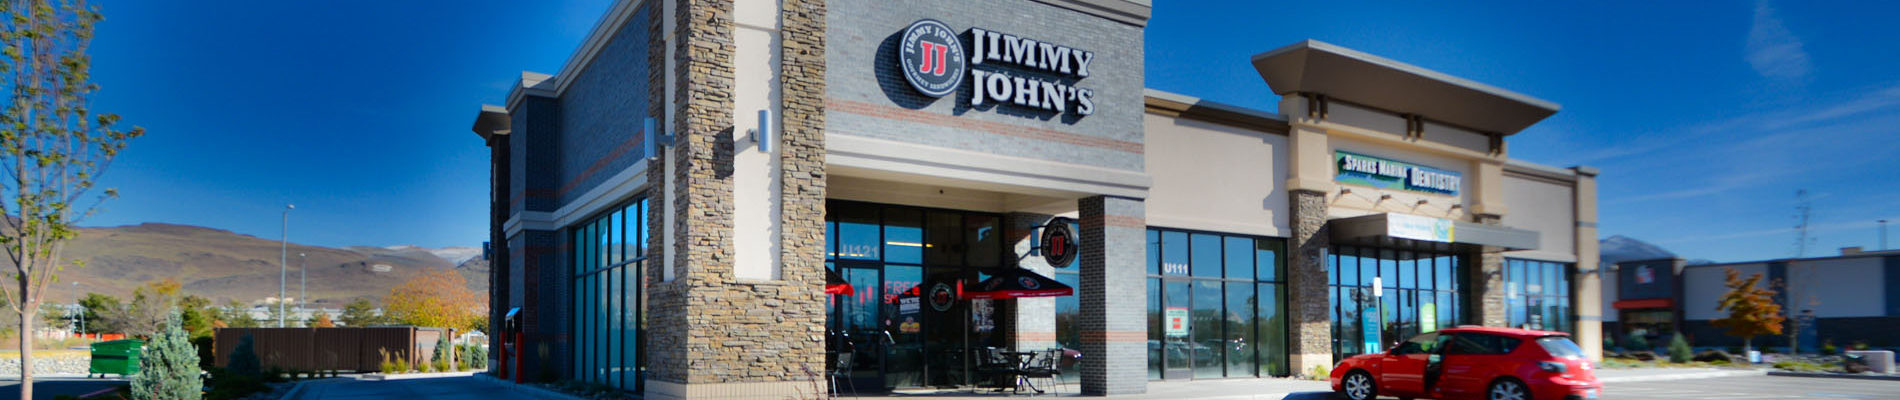 Exterior, Jimmy John's, Sparks, Nevada - John Anderson Construction, Inc.